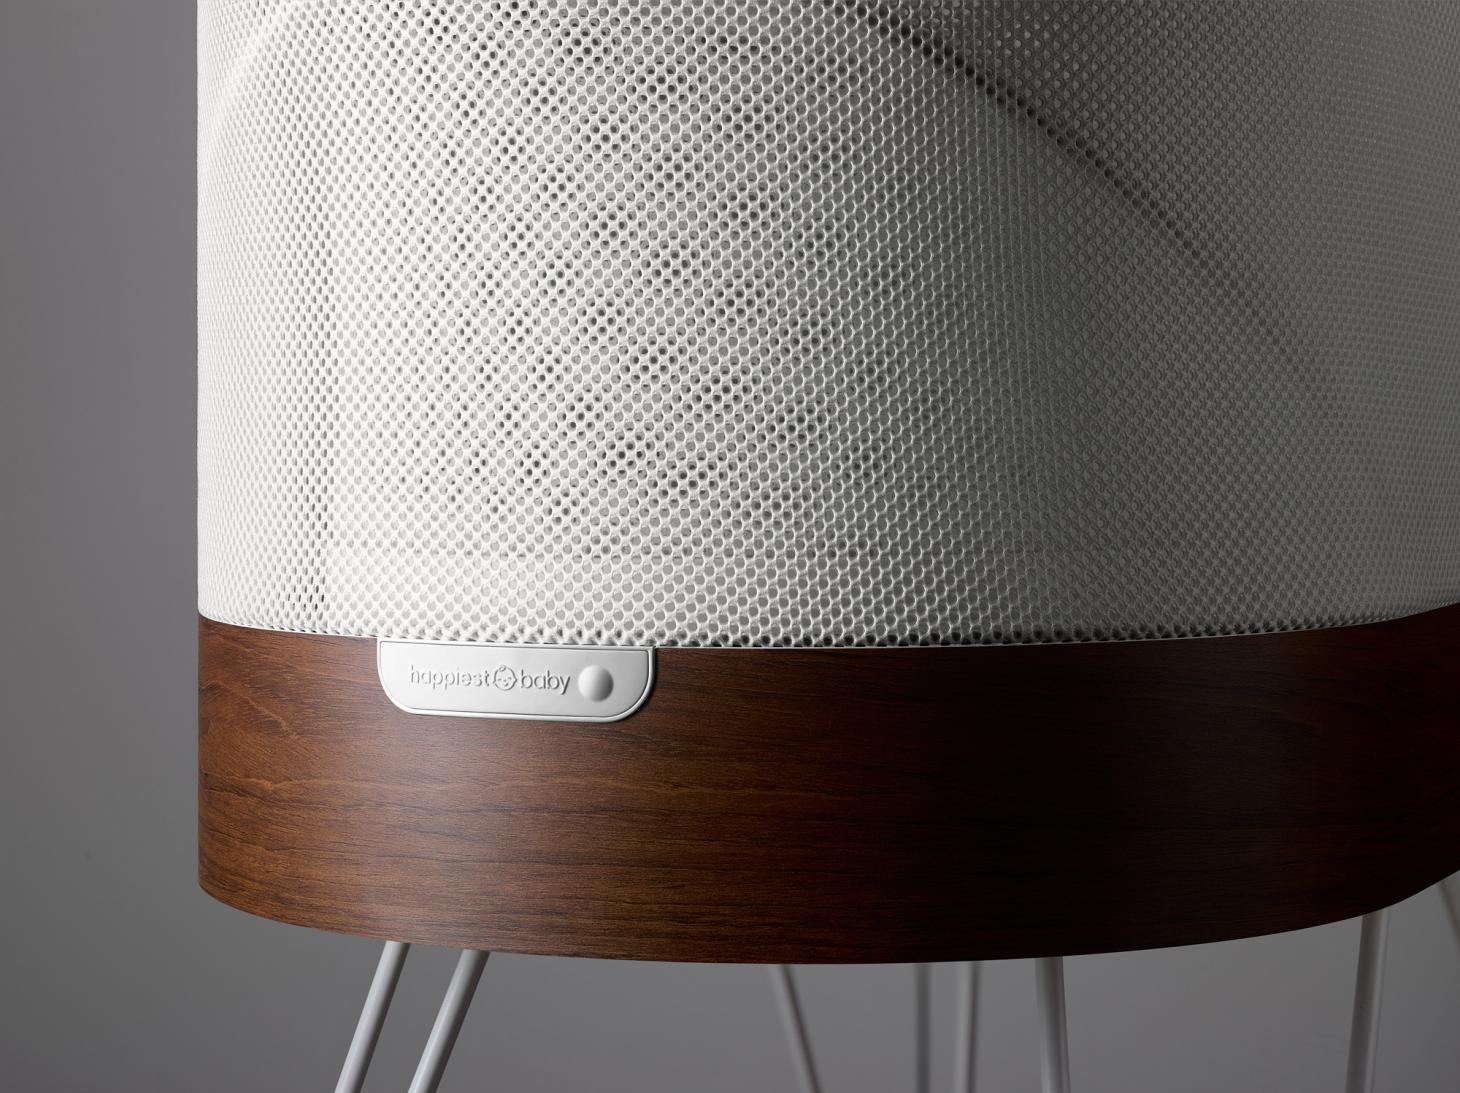 The 'Snoo' responsive baby cot, created in collaboration by Yves Behar and paediatrician Dr Harvey Karp